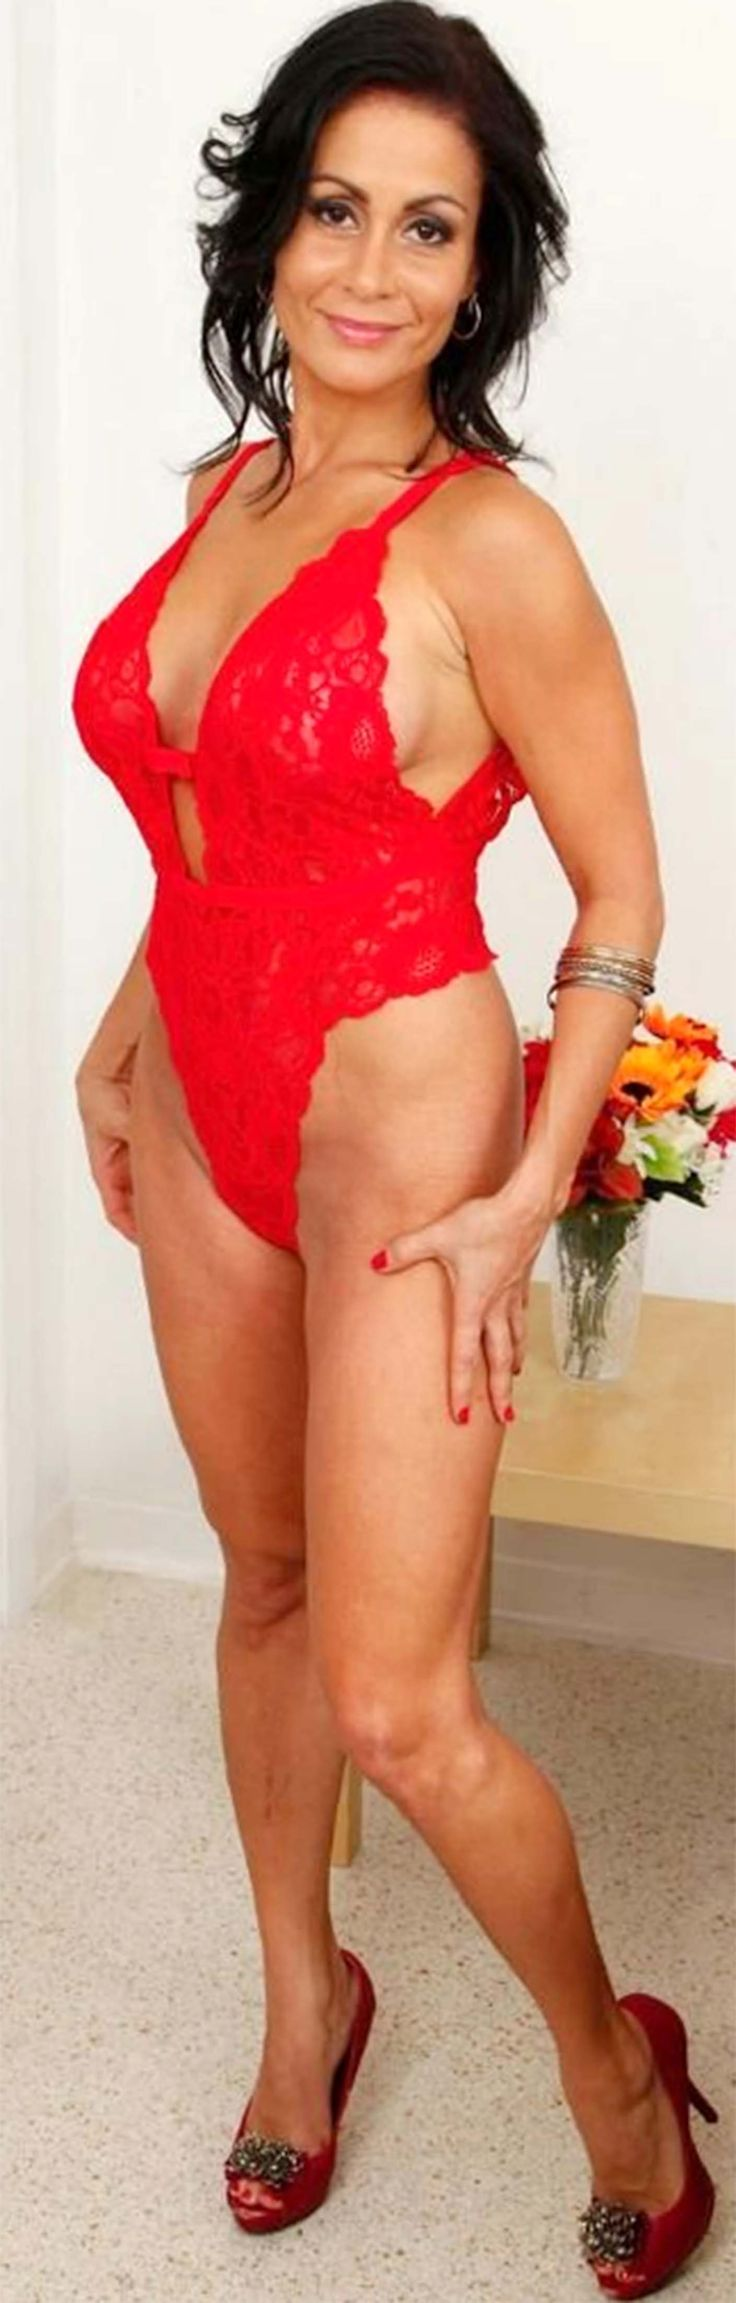 Mature Naked Video Woman